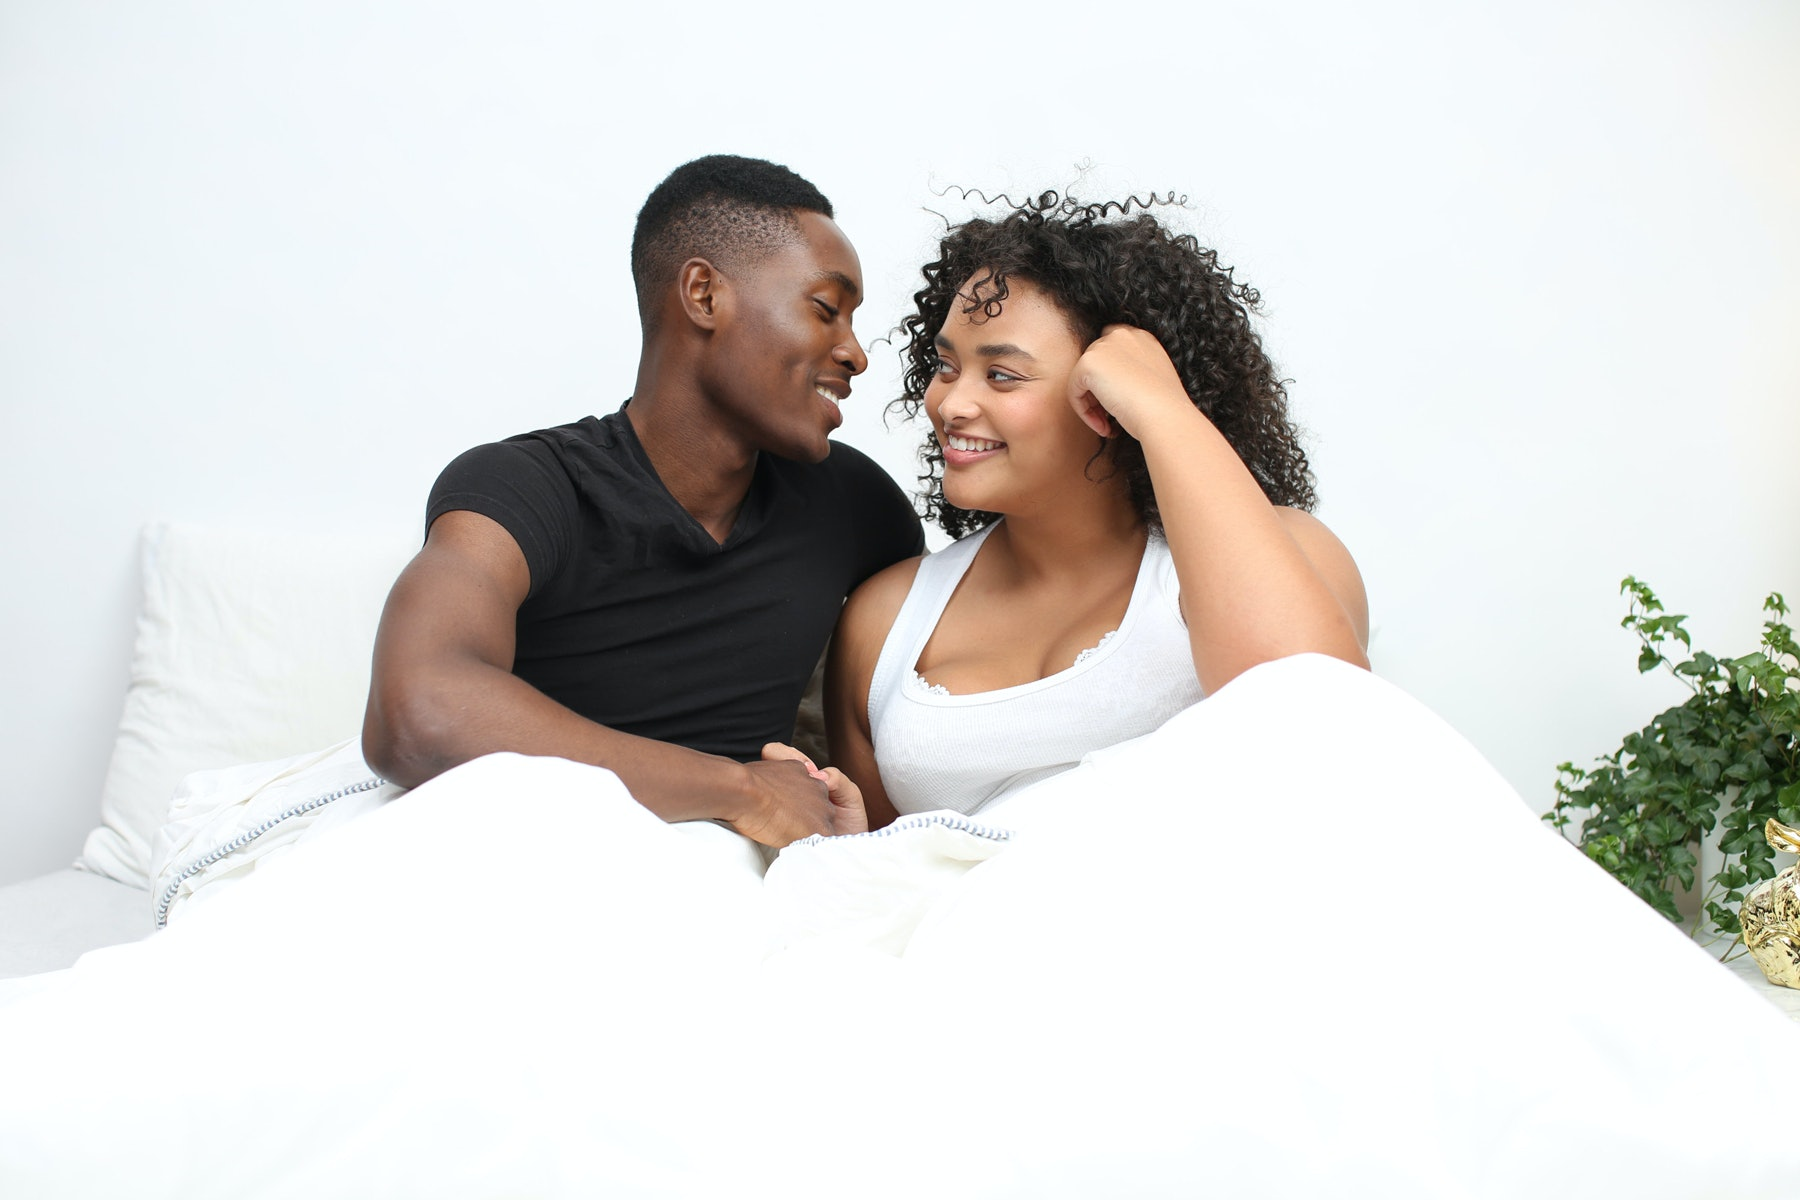 5 Questions To Ask Your Partner If You're Worried About Them Cheating